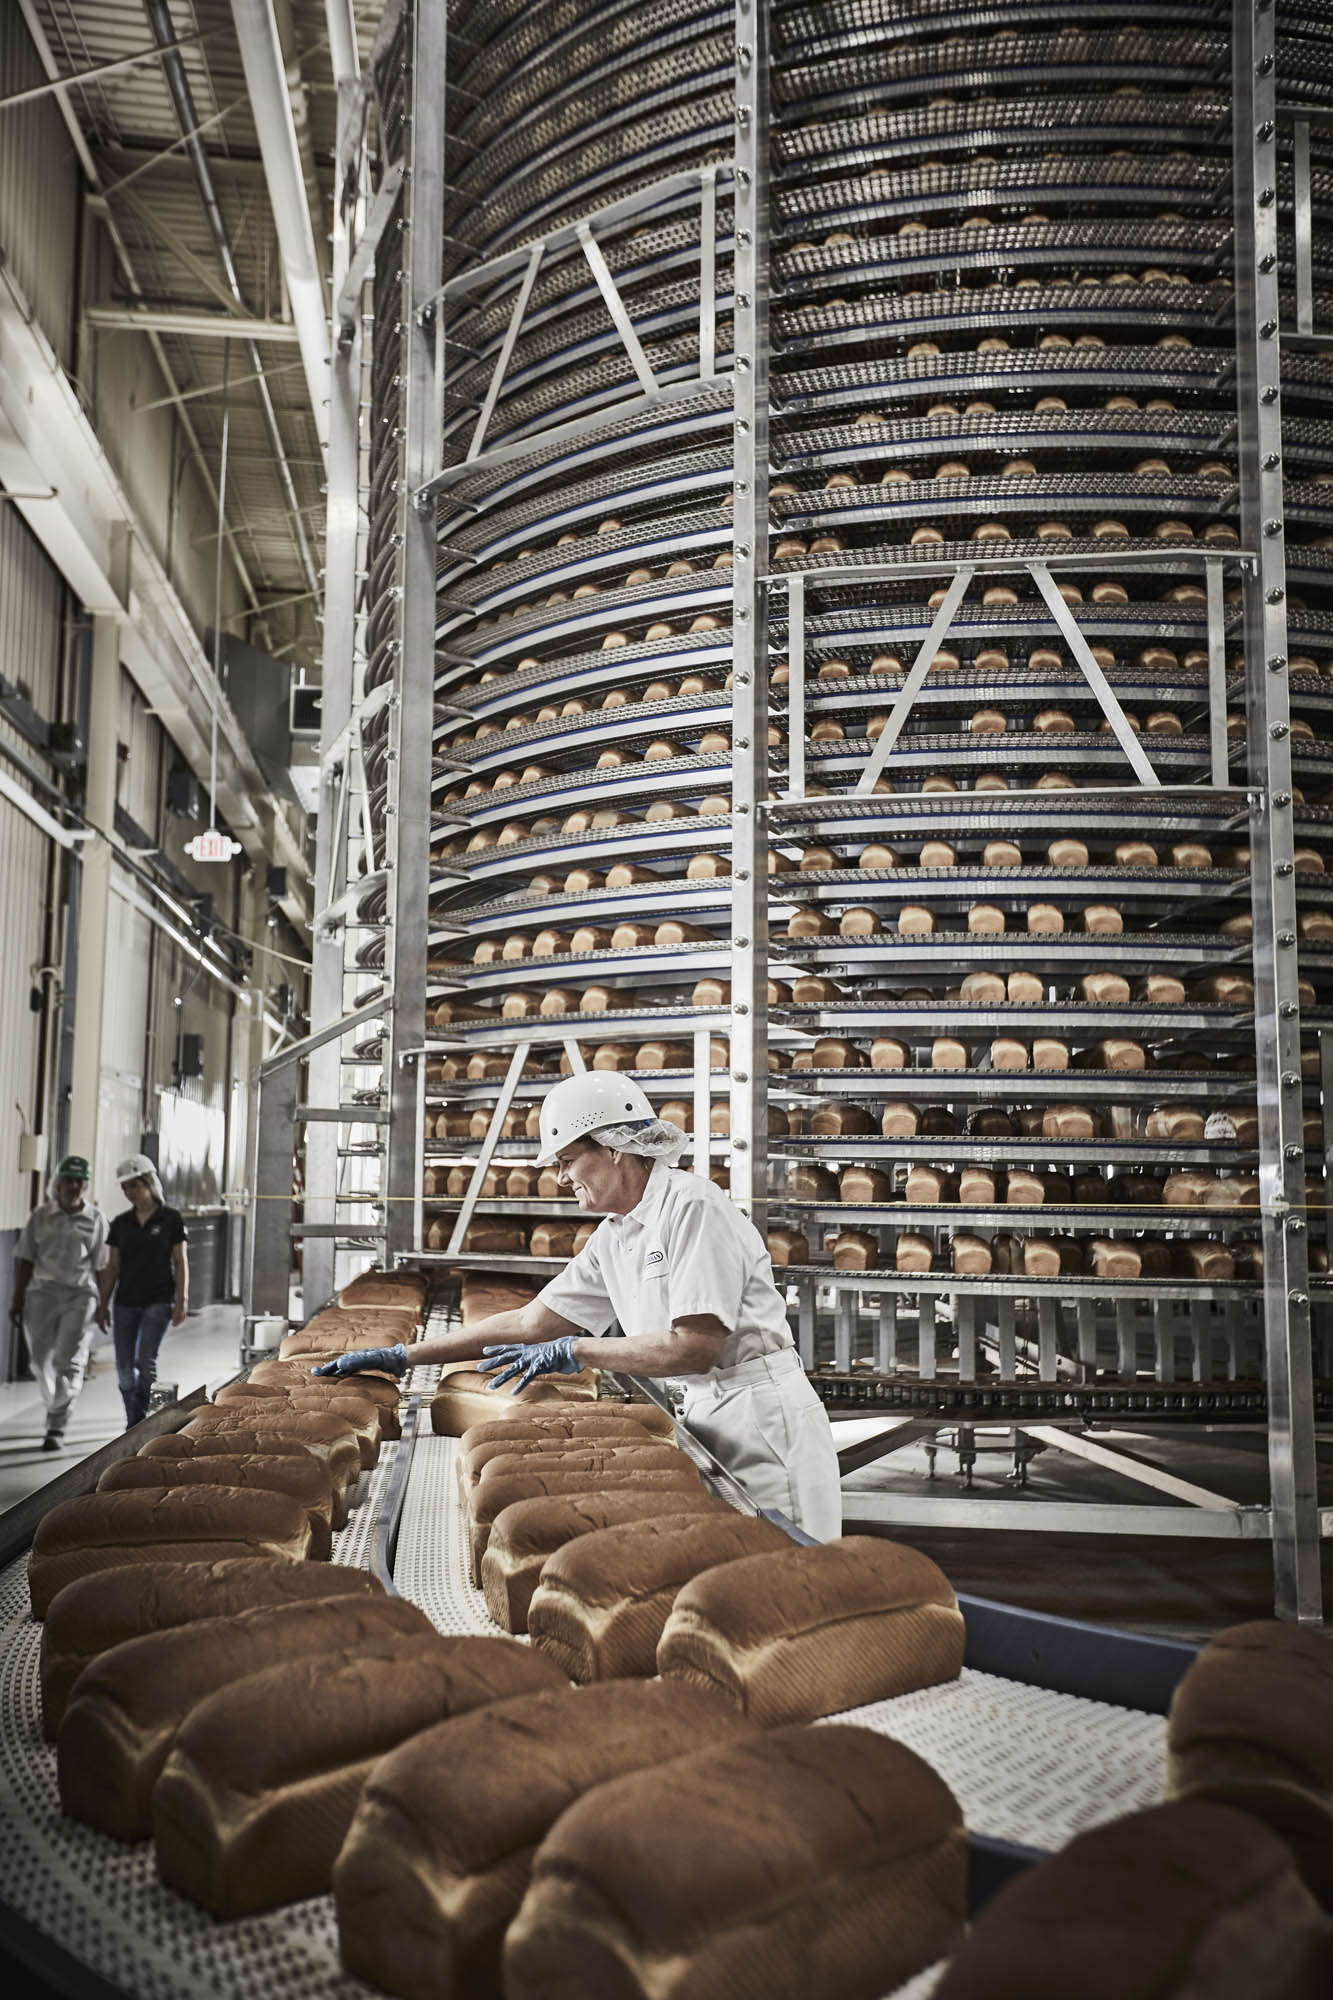 A tower of bread in before inspection in an industrial bakery